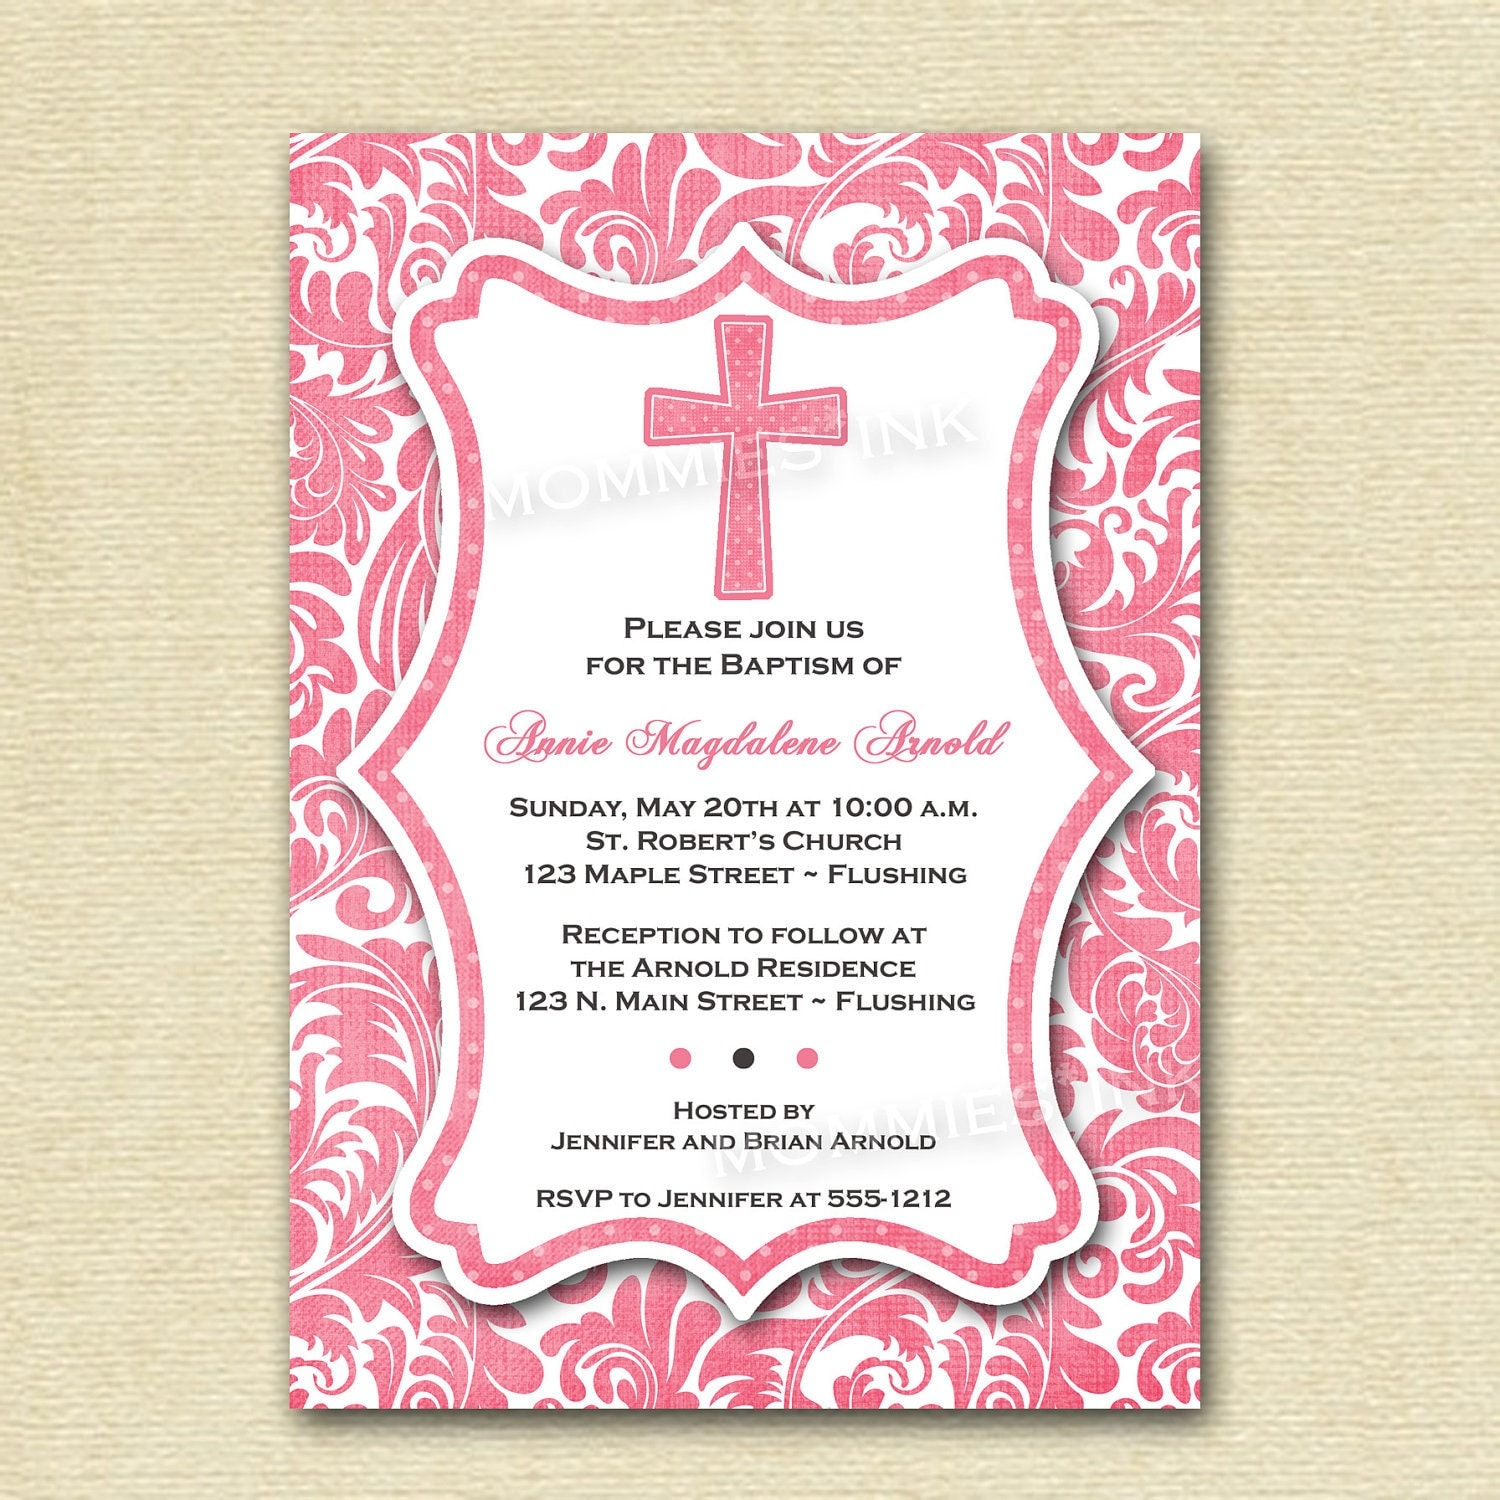 Printable Baptism Invitations absolutely amazing ideas for your invitation example